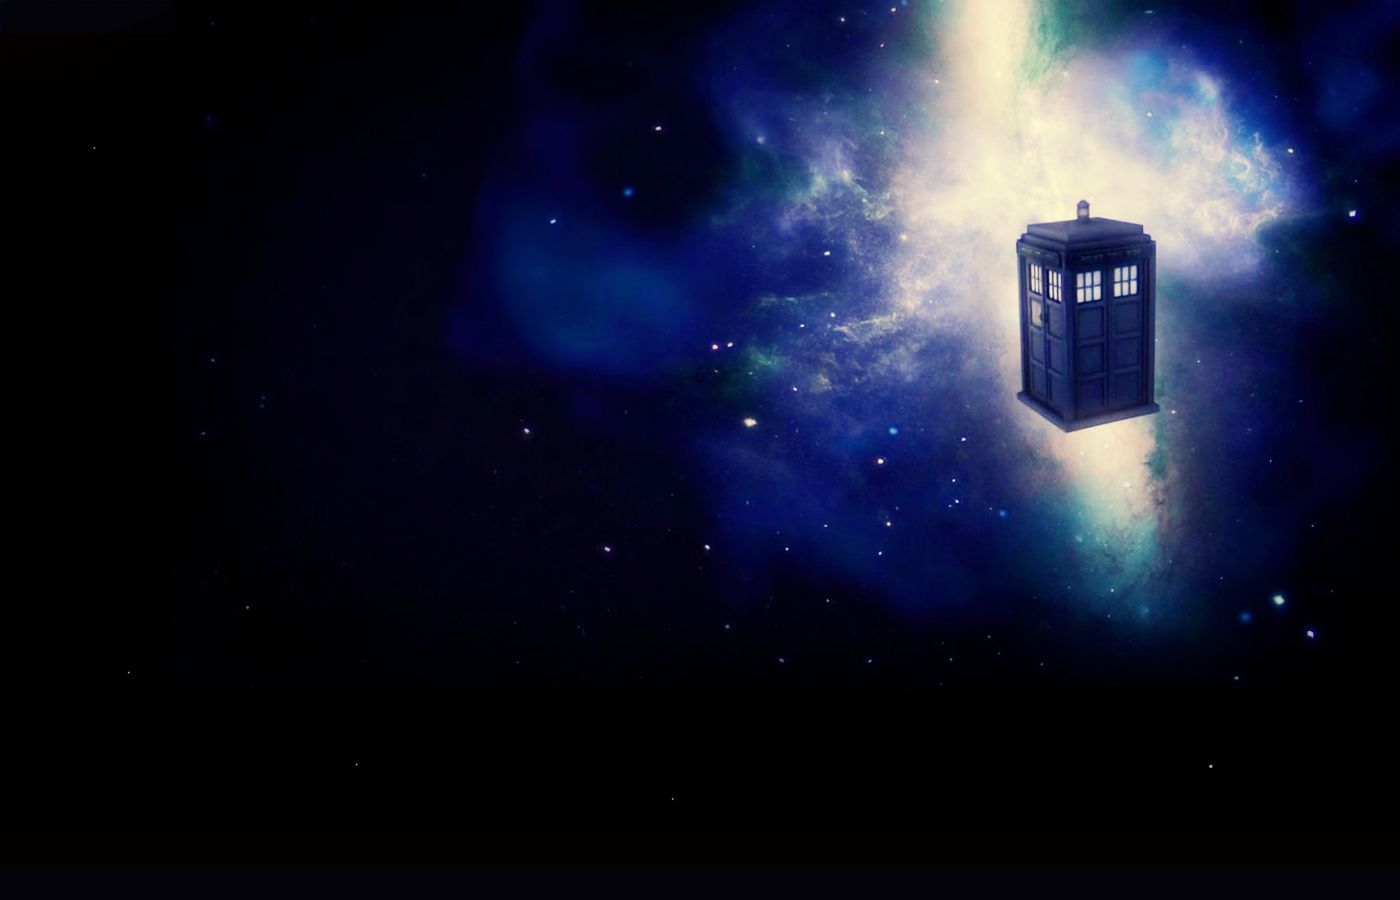 dr.who wallpaper for tablets | Tardis Doctor Who Abstract HD ...